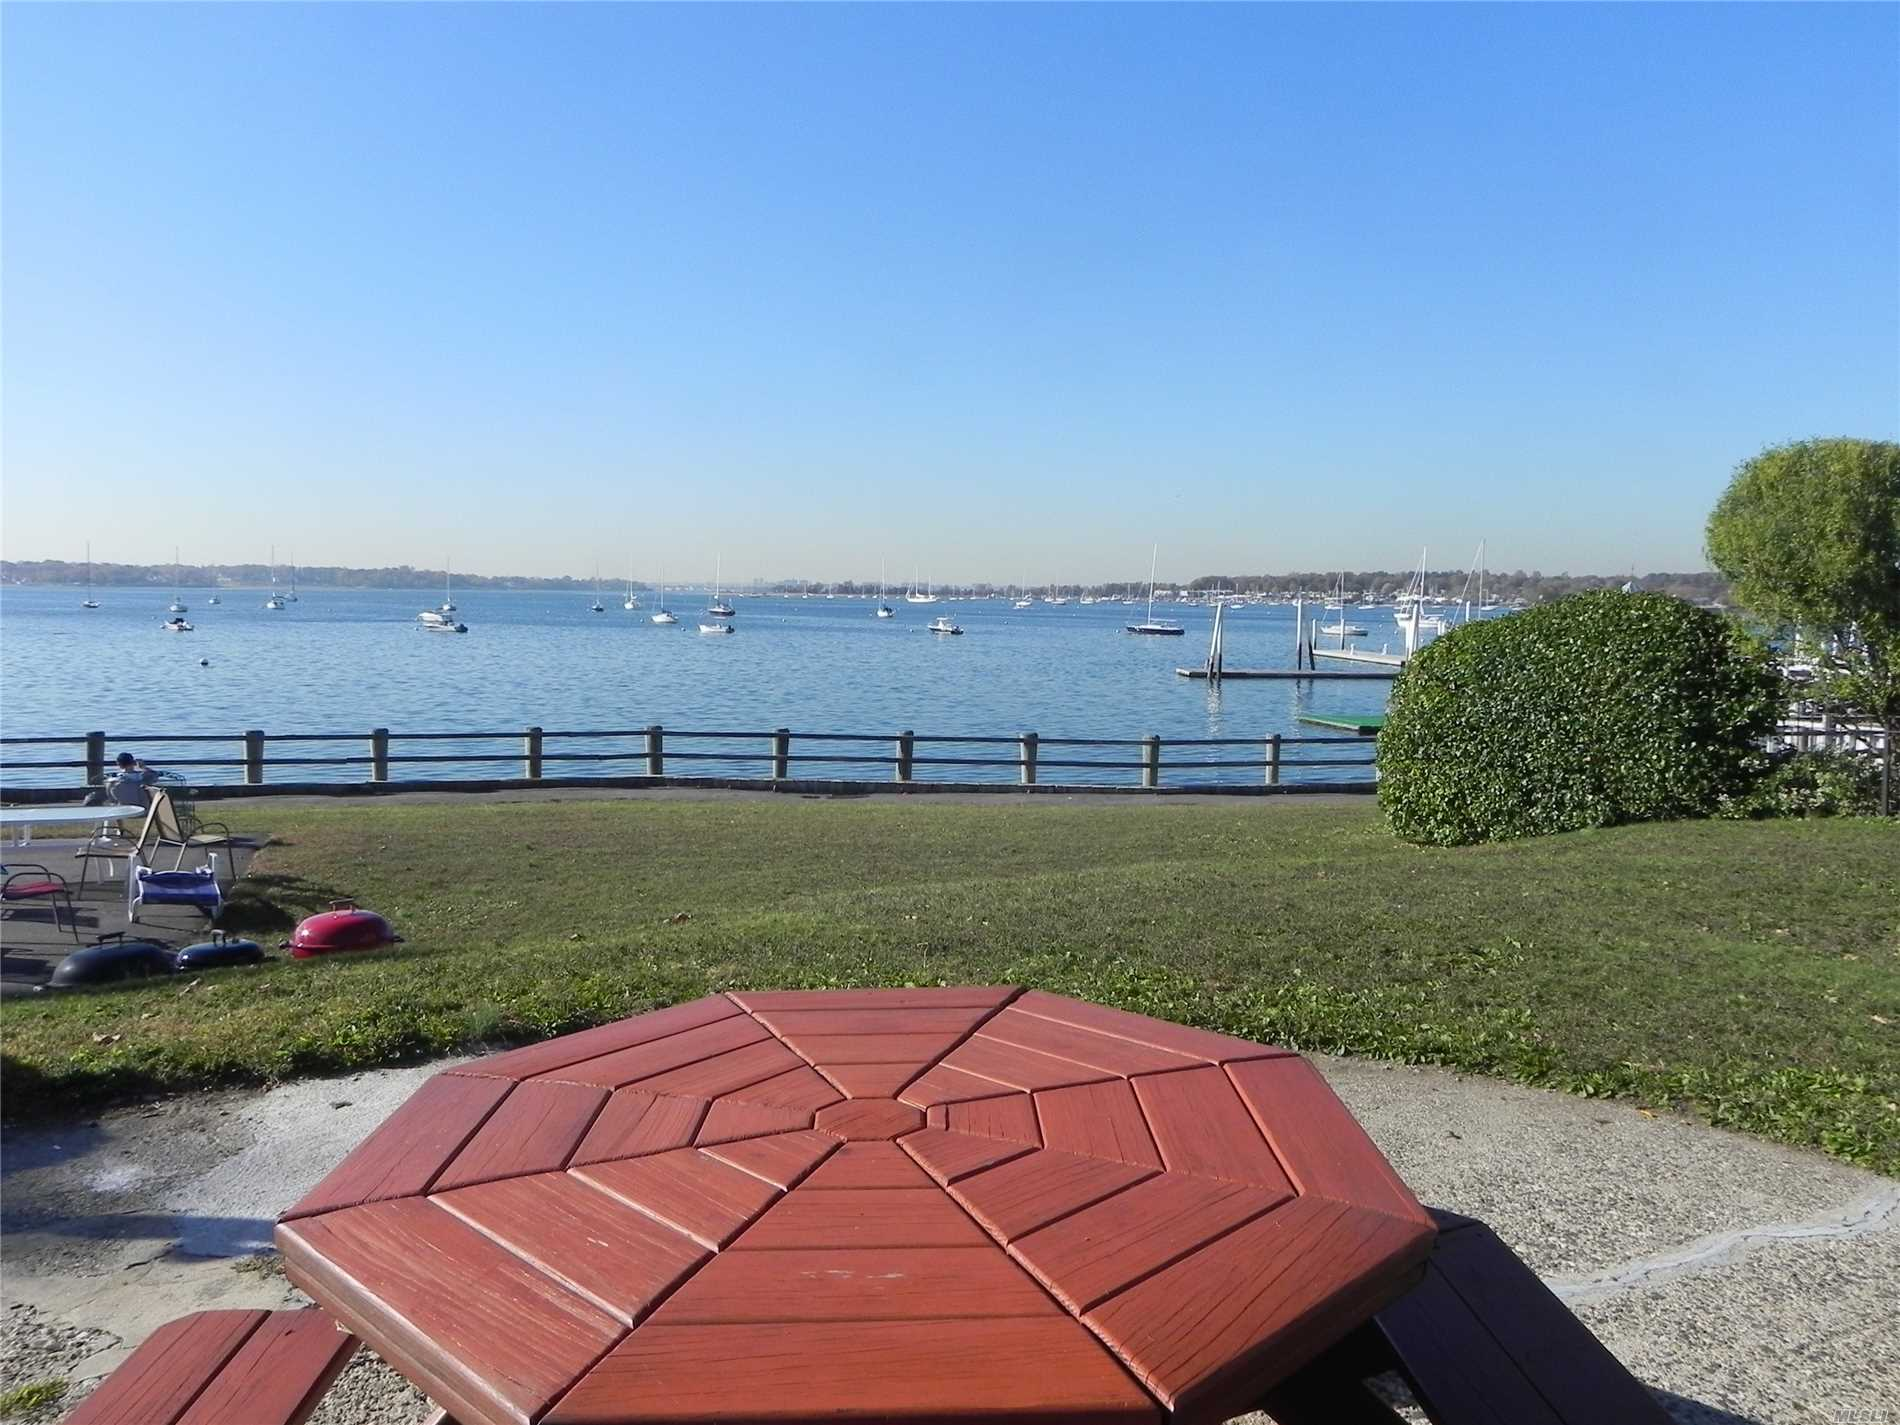 Top Floor 1 Bedroom/1 Bath Pet Friendly Apartment (Without Restriction) In Waterfront Garden Apartment Complex. Beautiful Grounds With Private Dock And Bbq Area. Apartment Features Hardwood Floors Throughout, Eat-In Kitchen, Spacious Lr/Dr And Over-Sized Bedroom. Free Shuttle To Lirr M-F Am/Pm Rush.